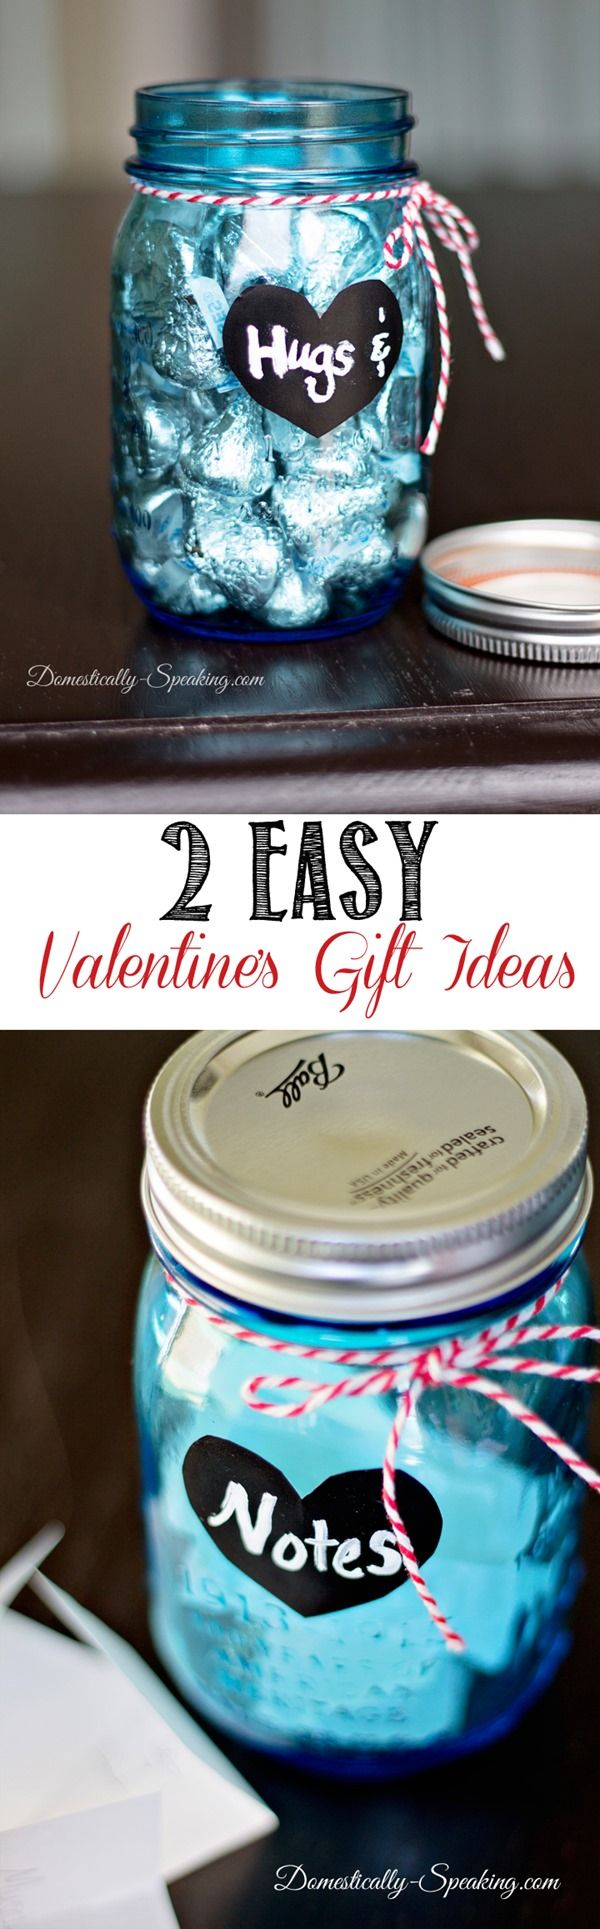 easy quick valentine's day gifts for him